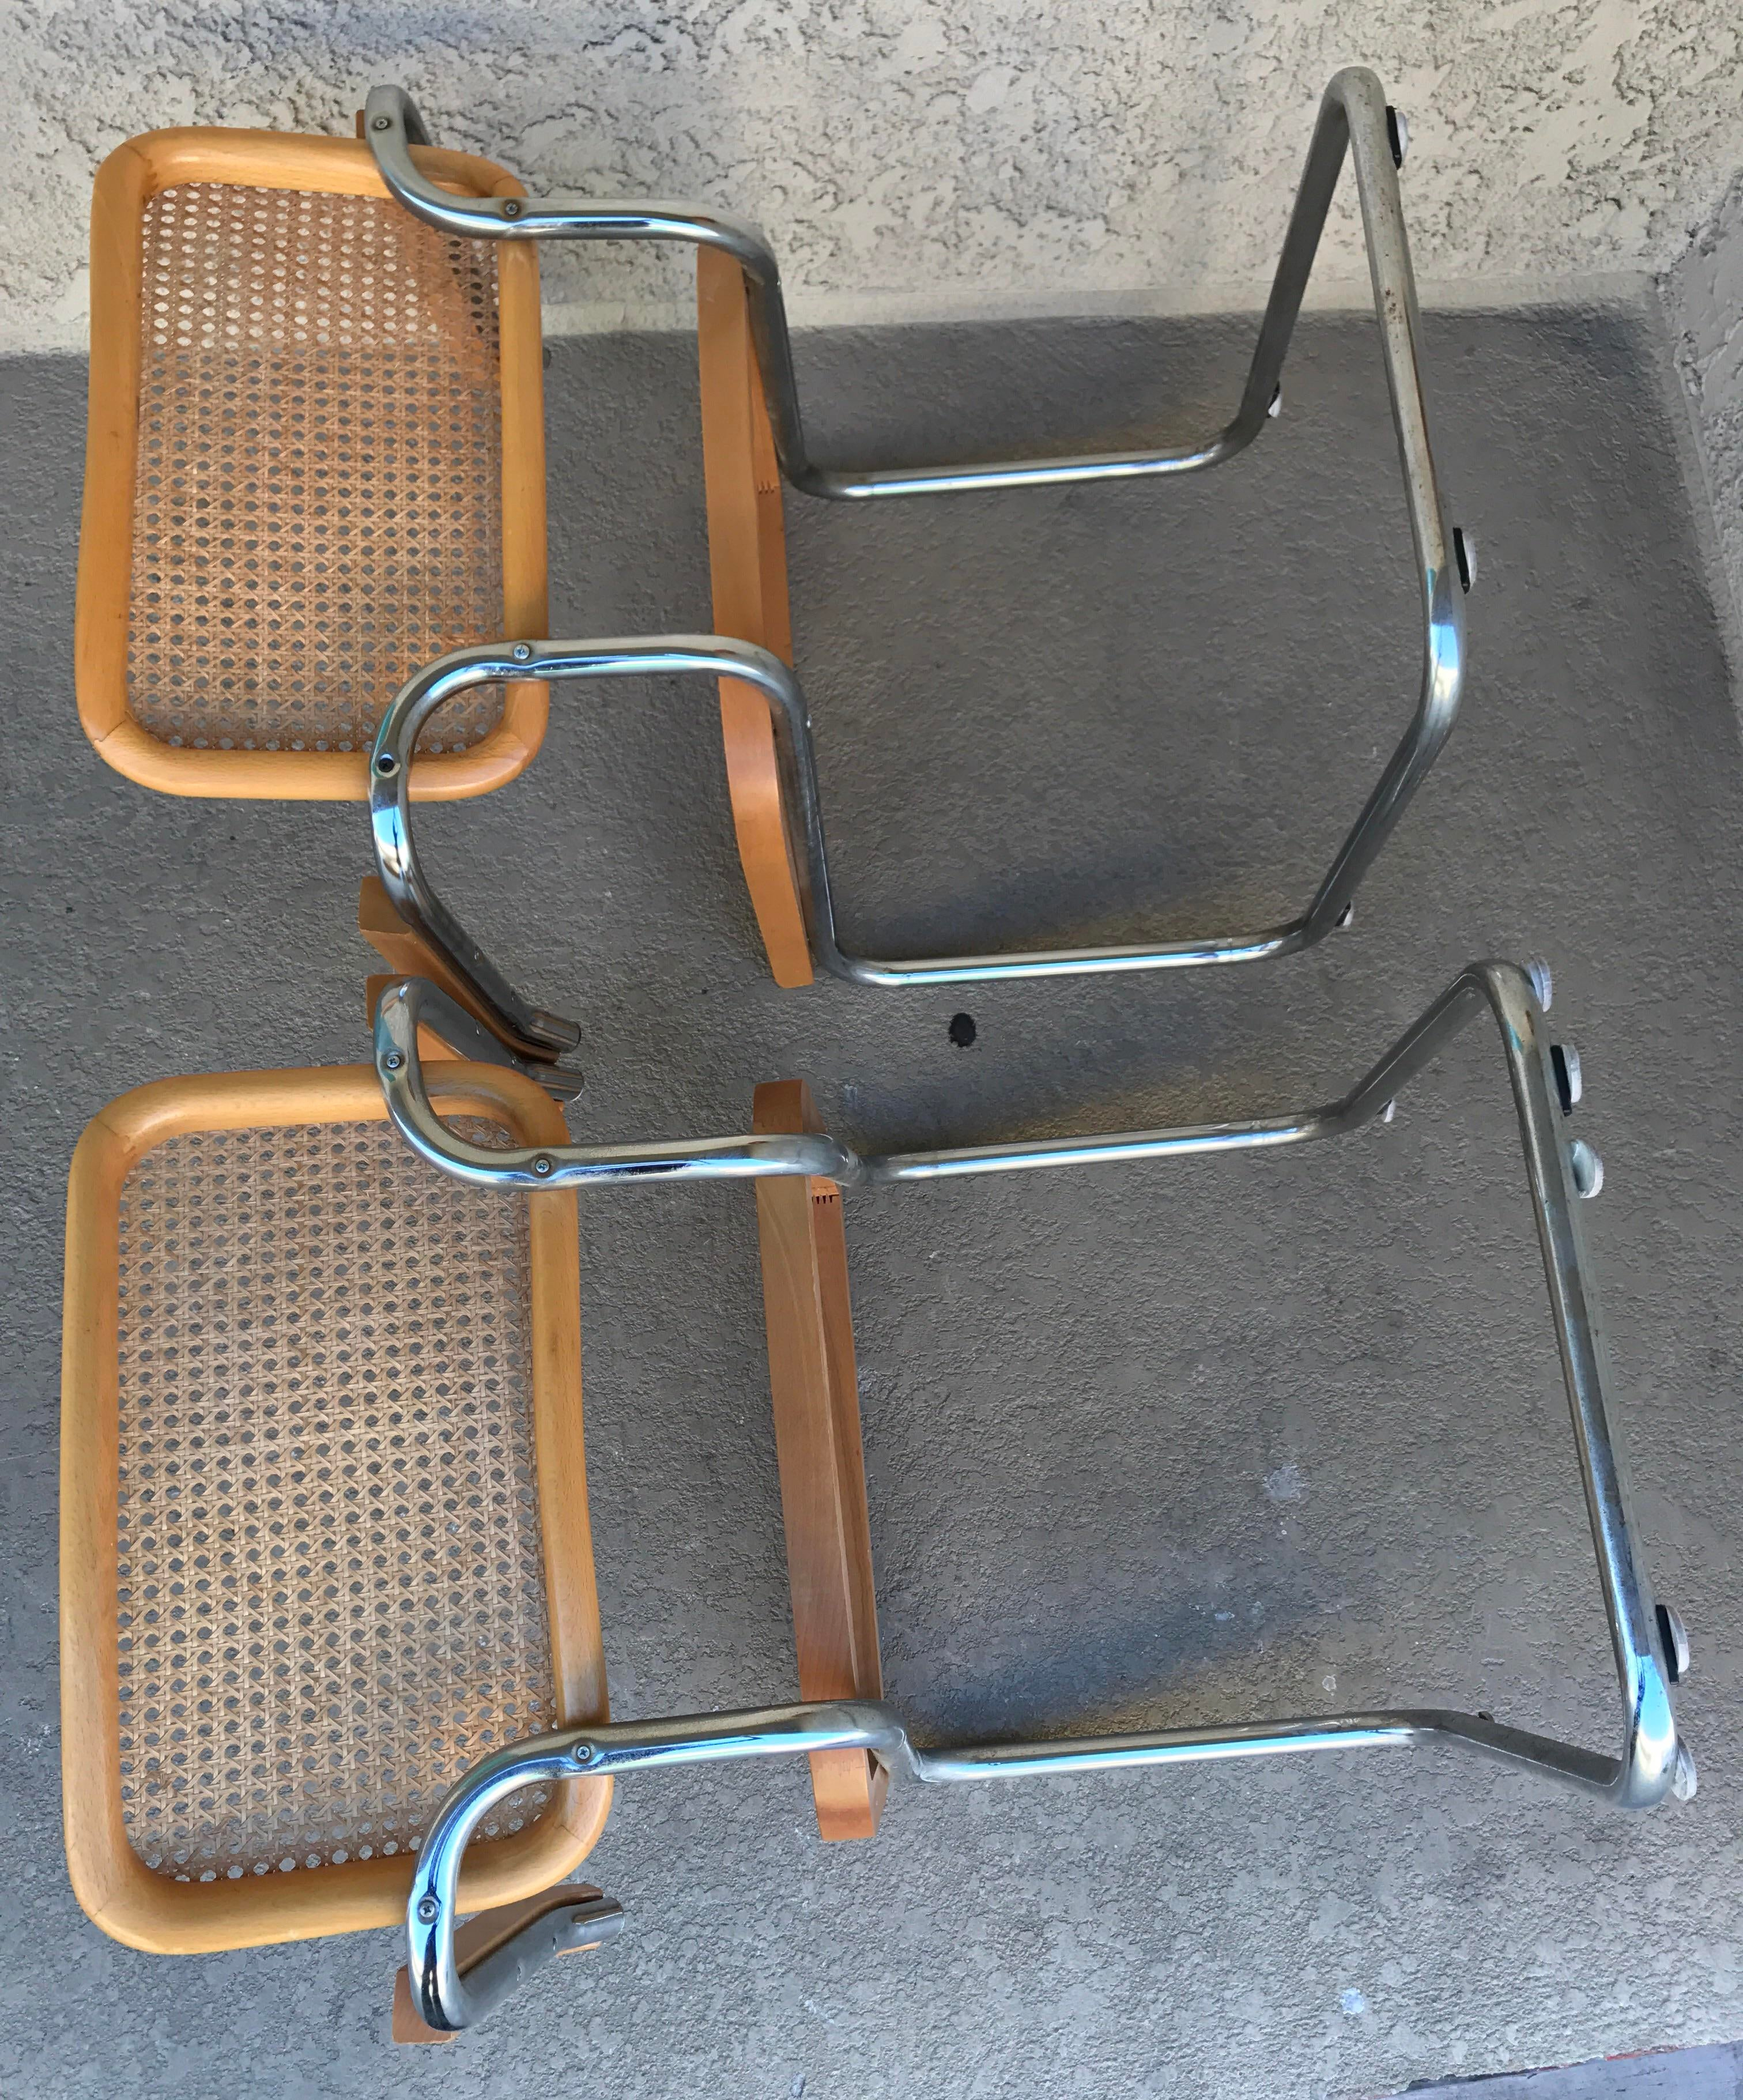 marcel breuer cesca chair with armrests neutral posture parts b64 chairs - a pair | chairish